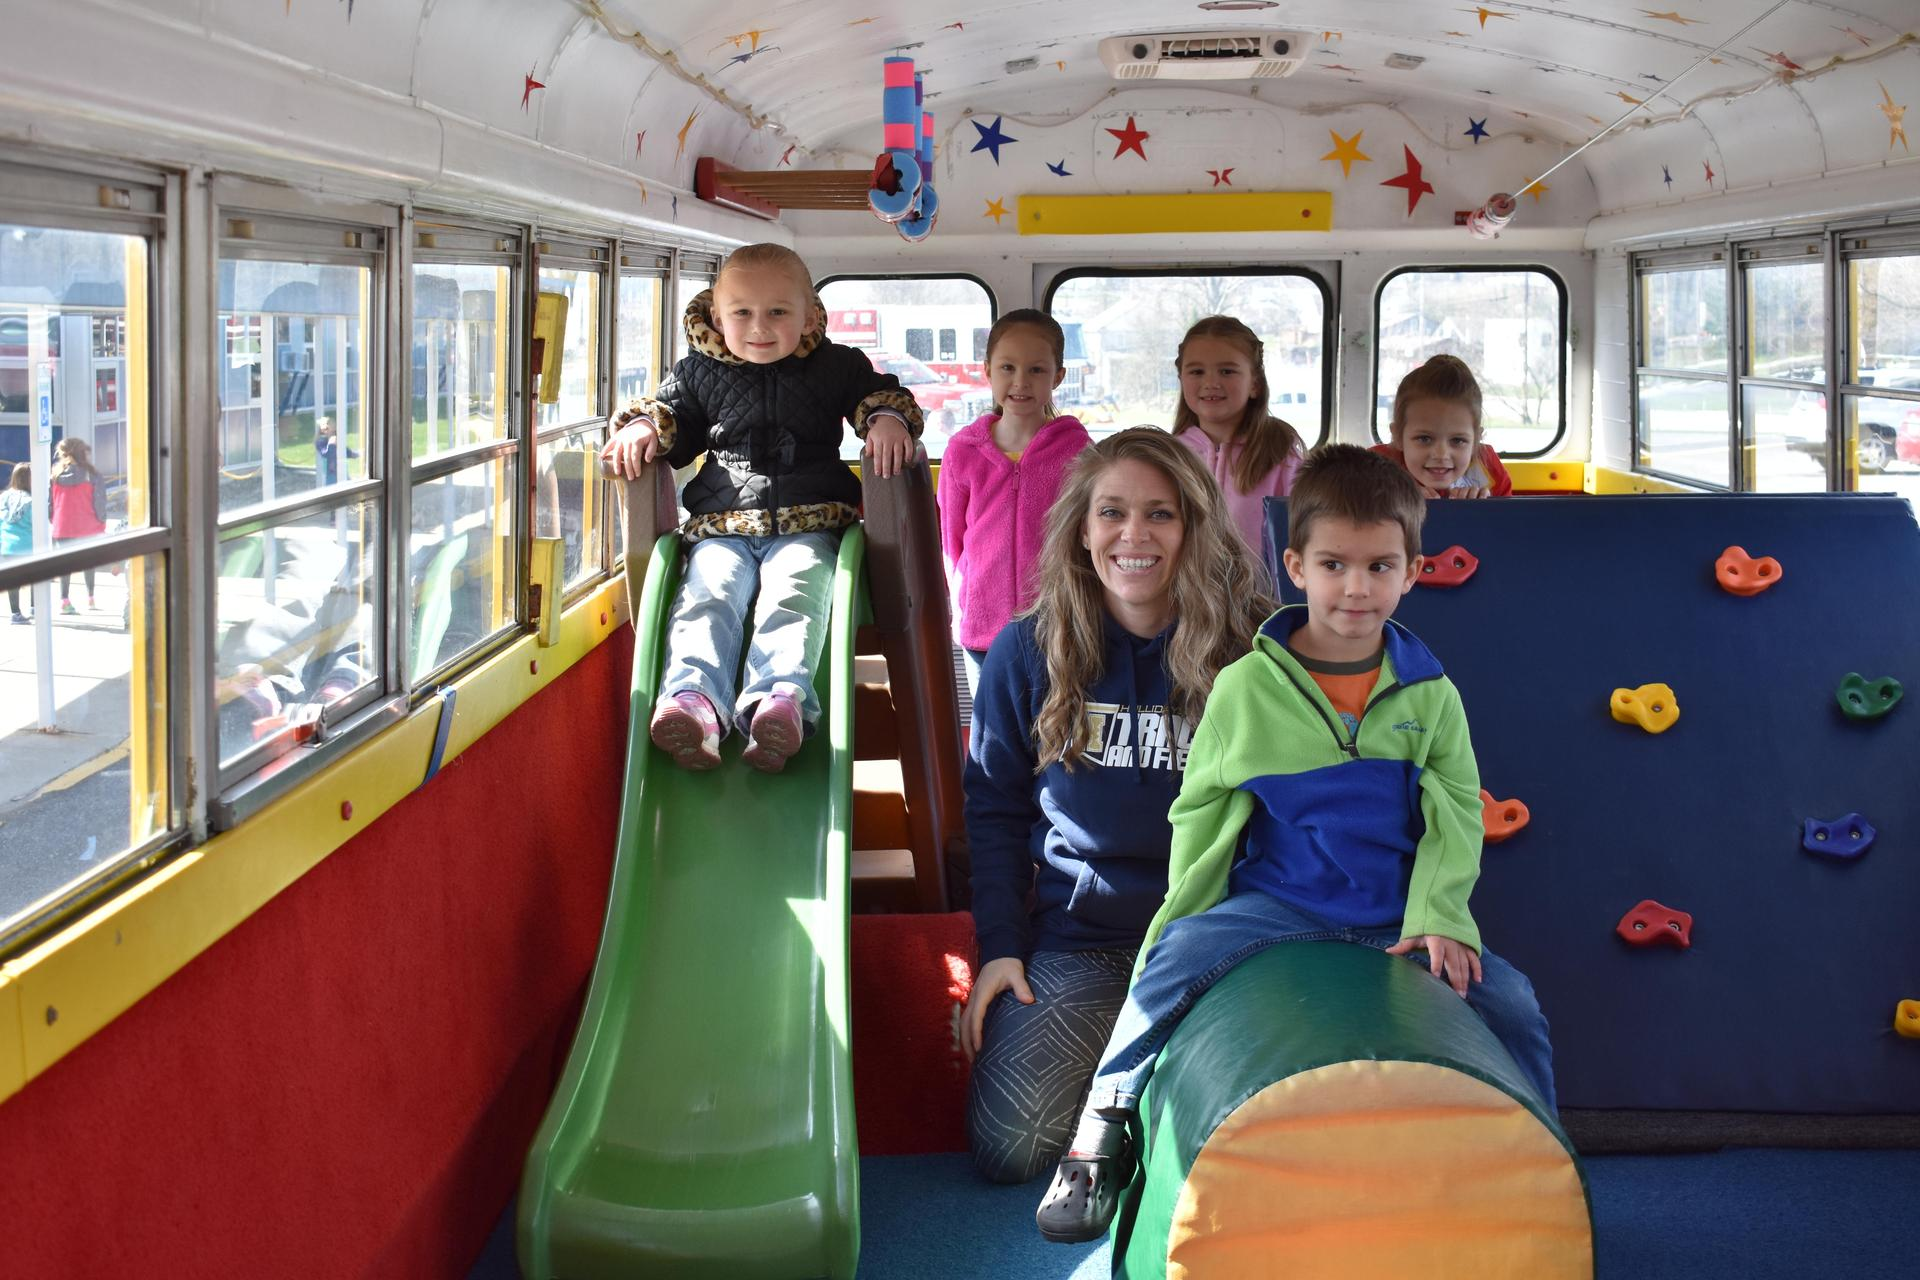 Students playing in fun bus